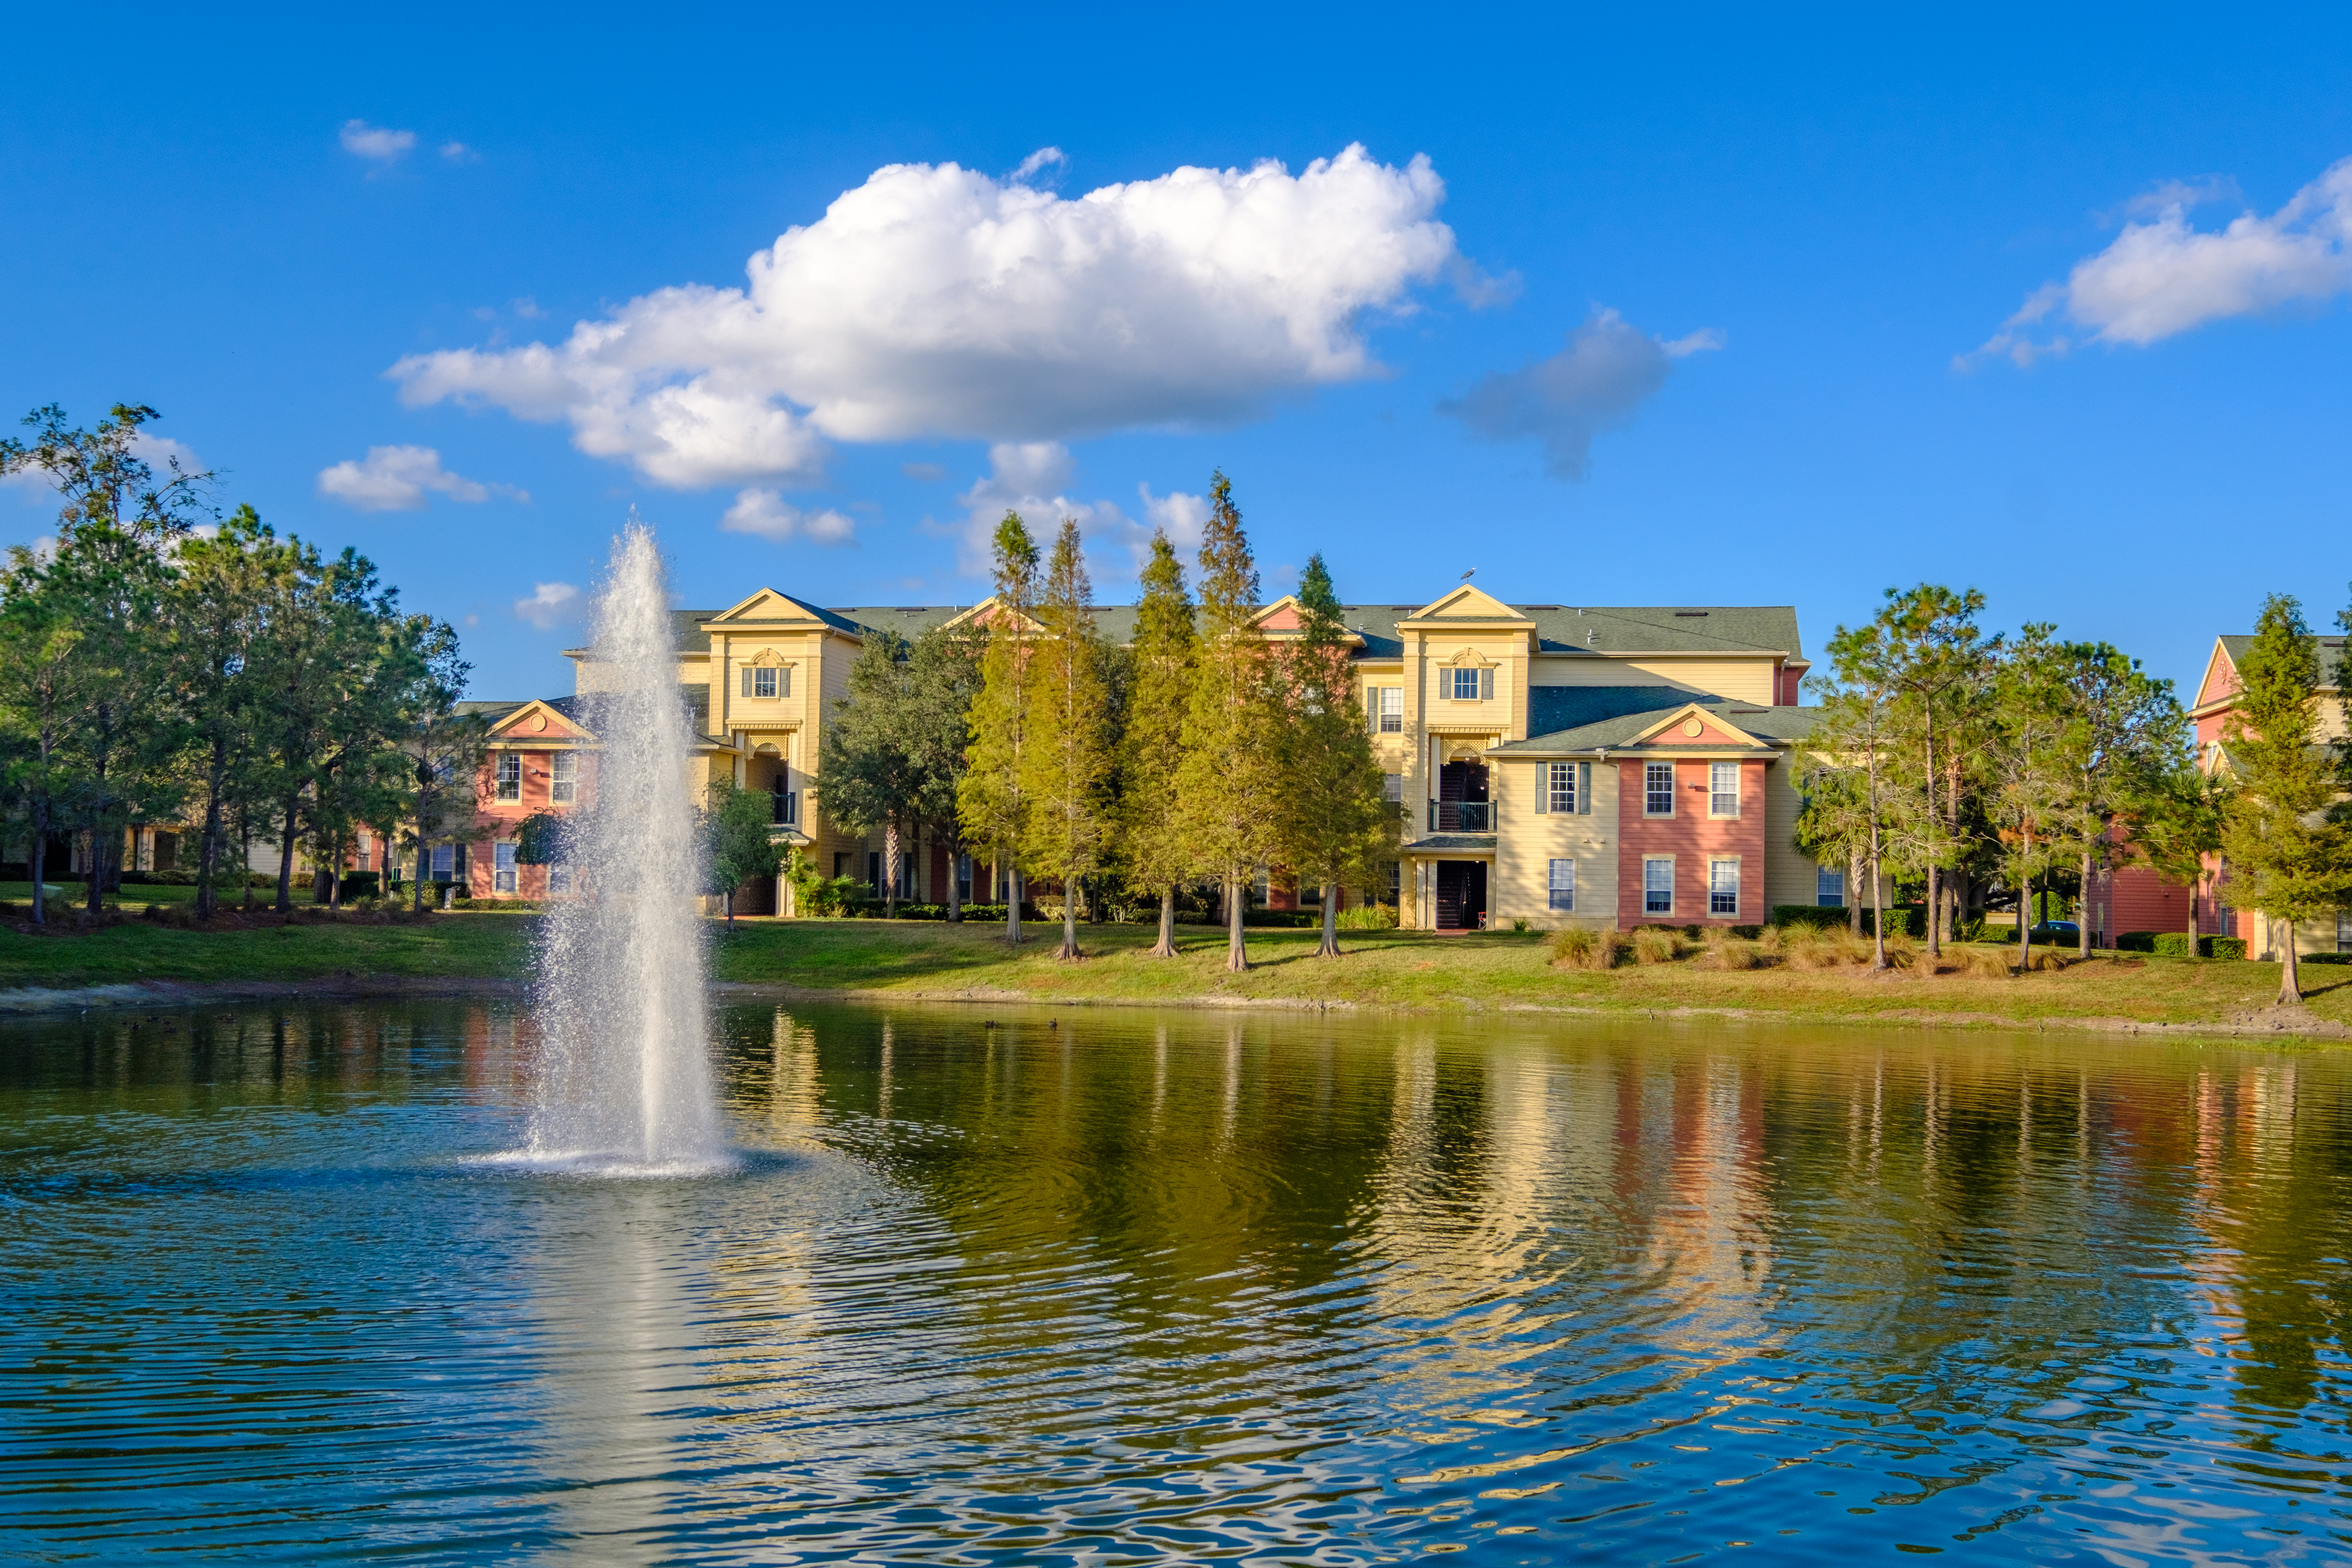 Victoria-Landing-Lake-and-Fountain-3